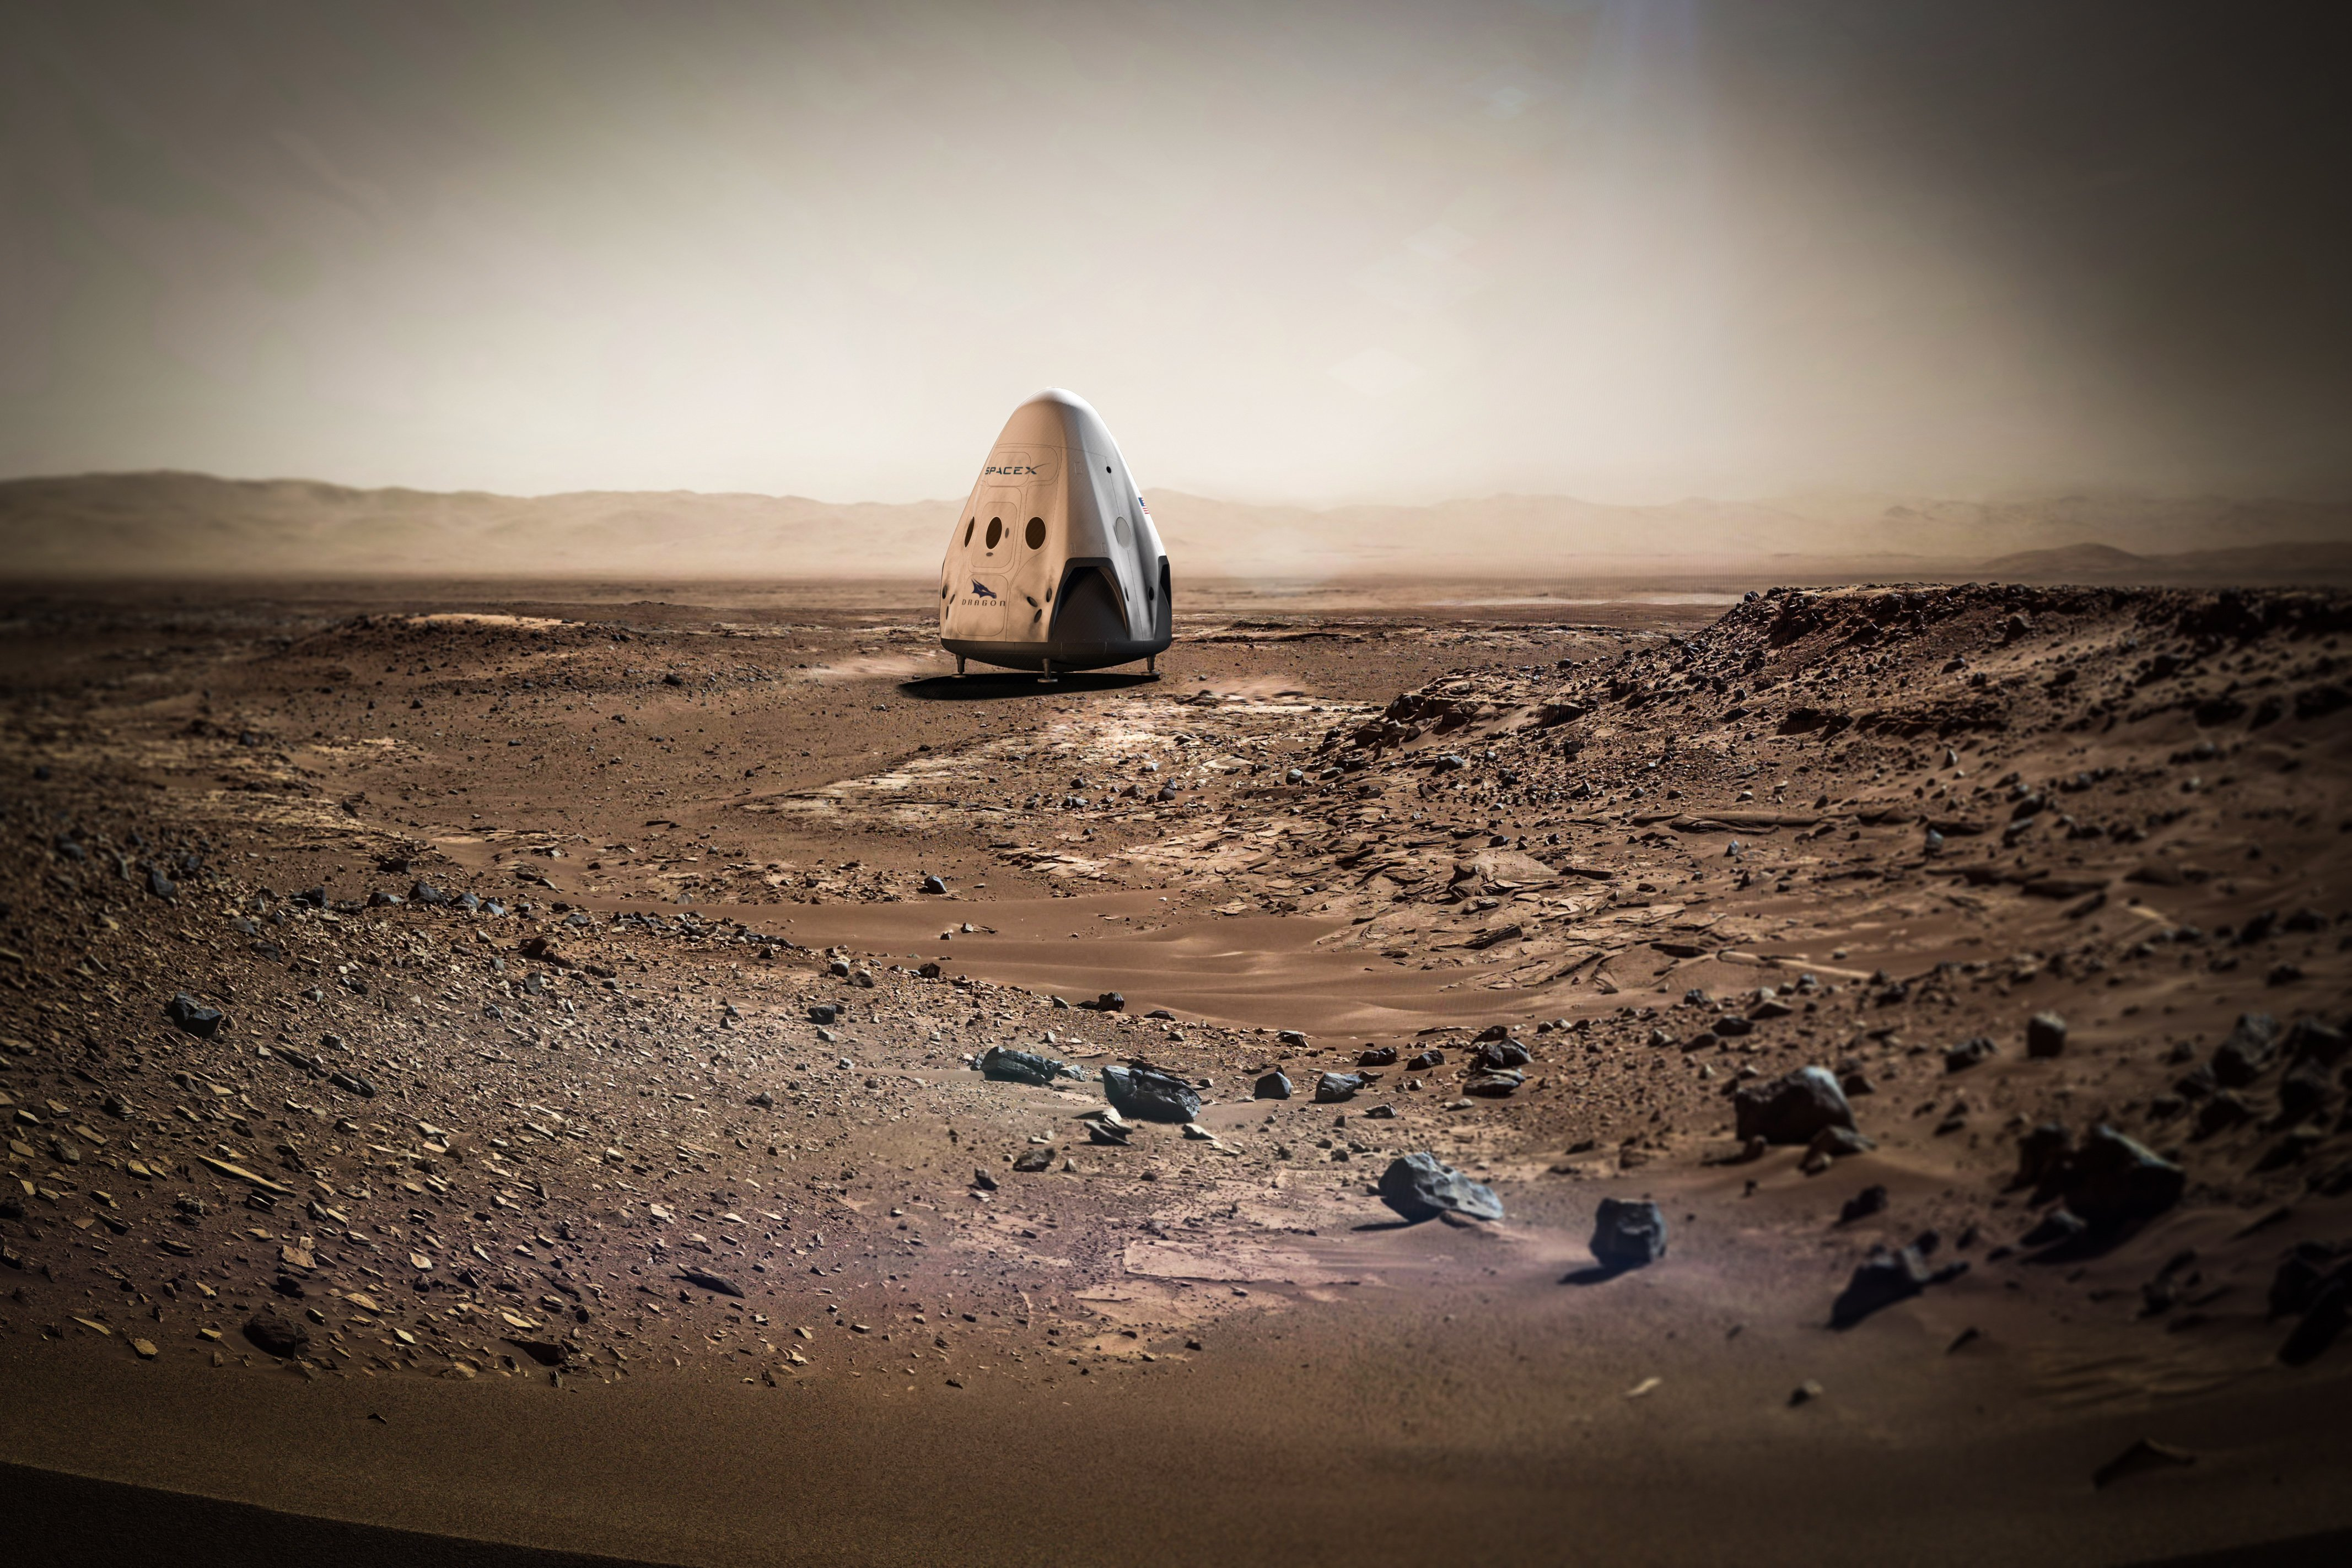 A rendering of SpaceX's Red Dragon capsule on Mars.